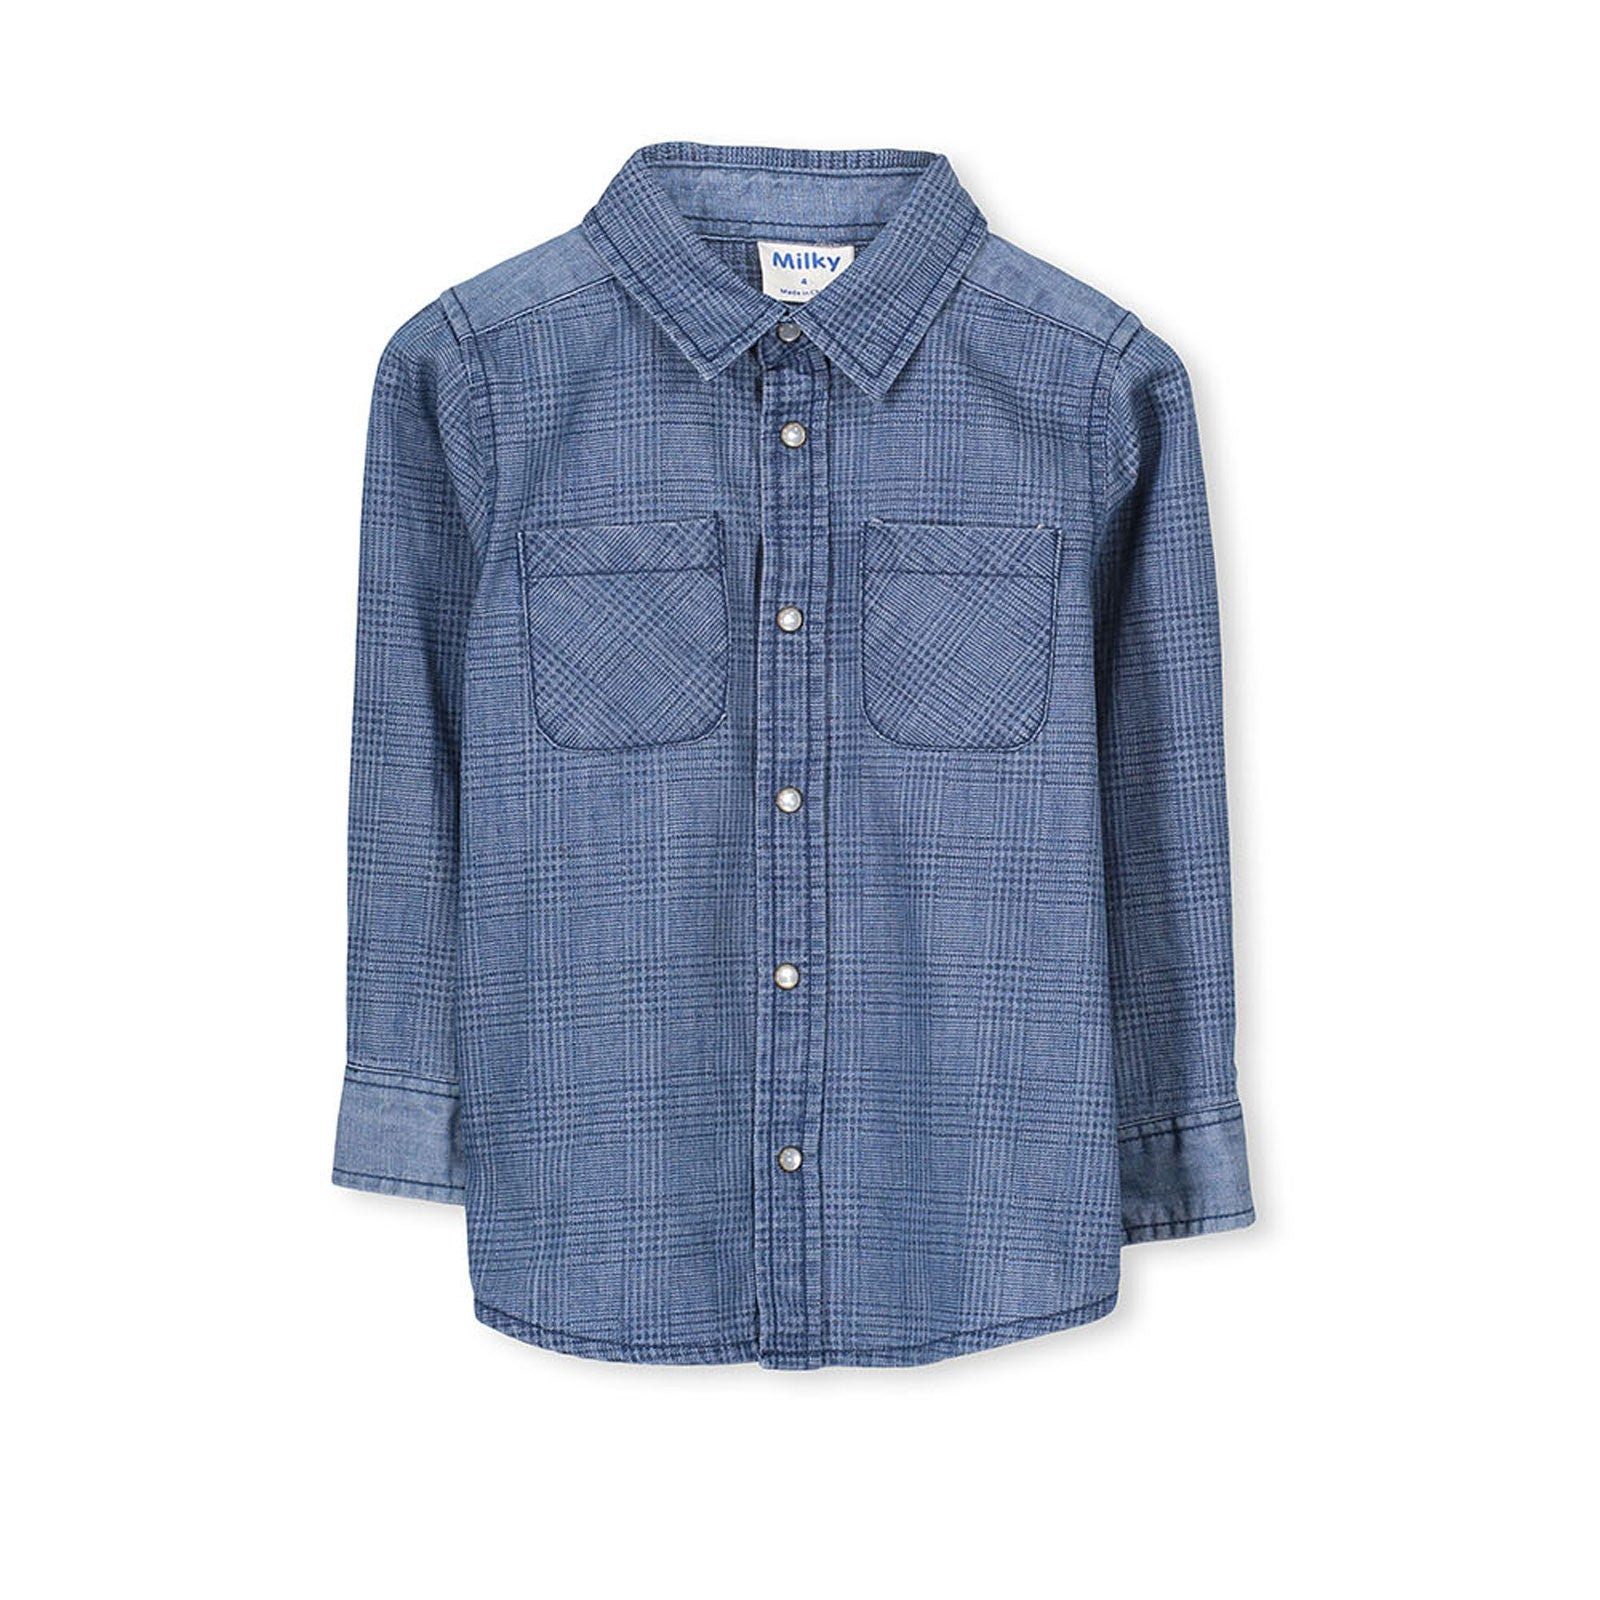 Milky Baby Blue Denim Check Shirt